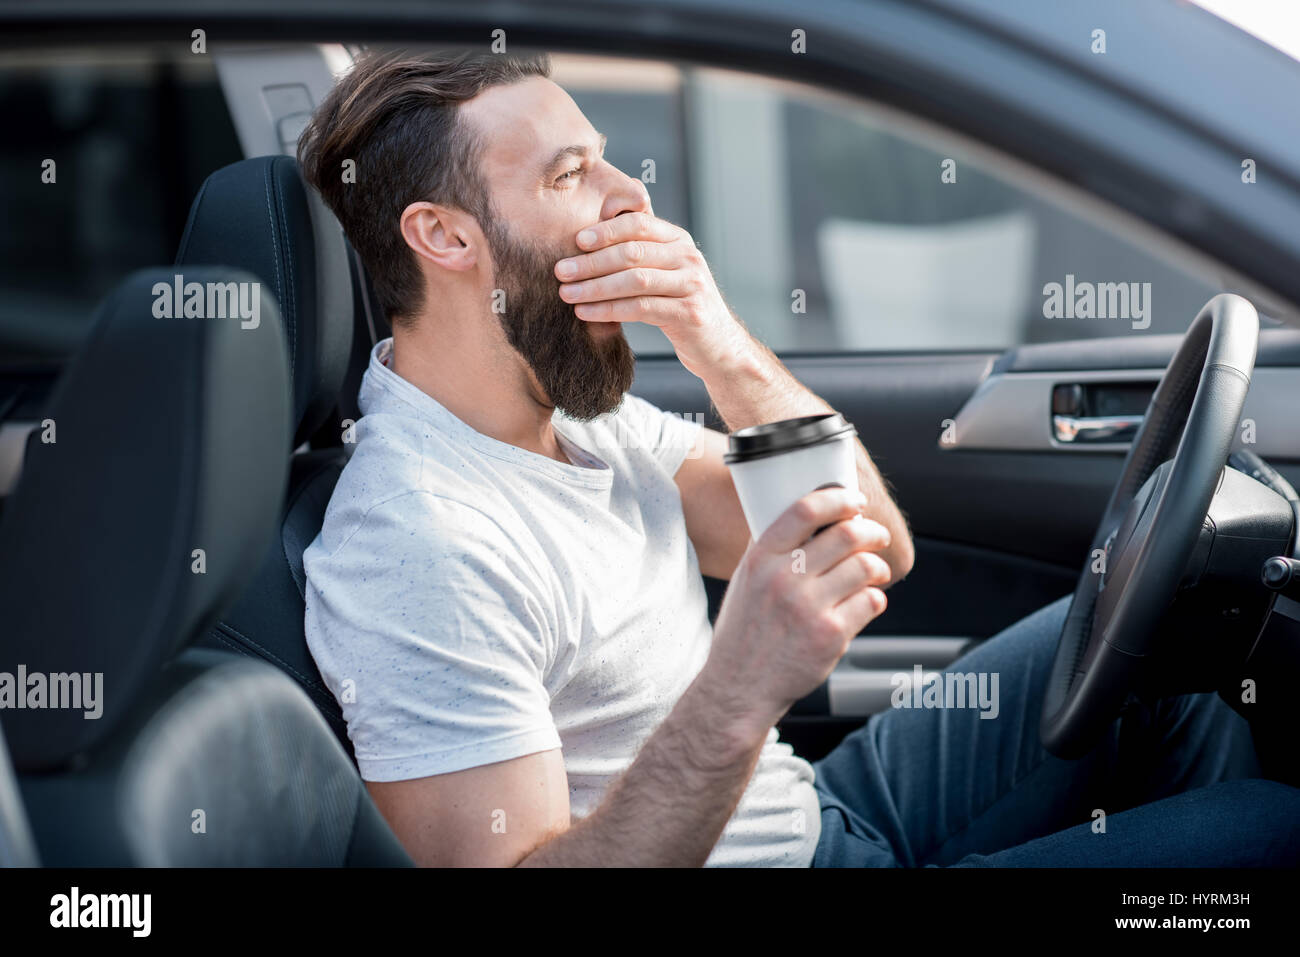 Tired man driving a car - Stock Image